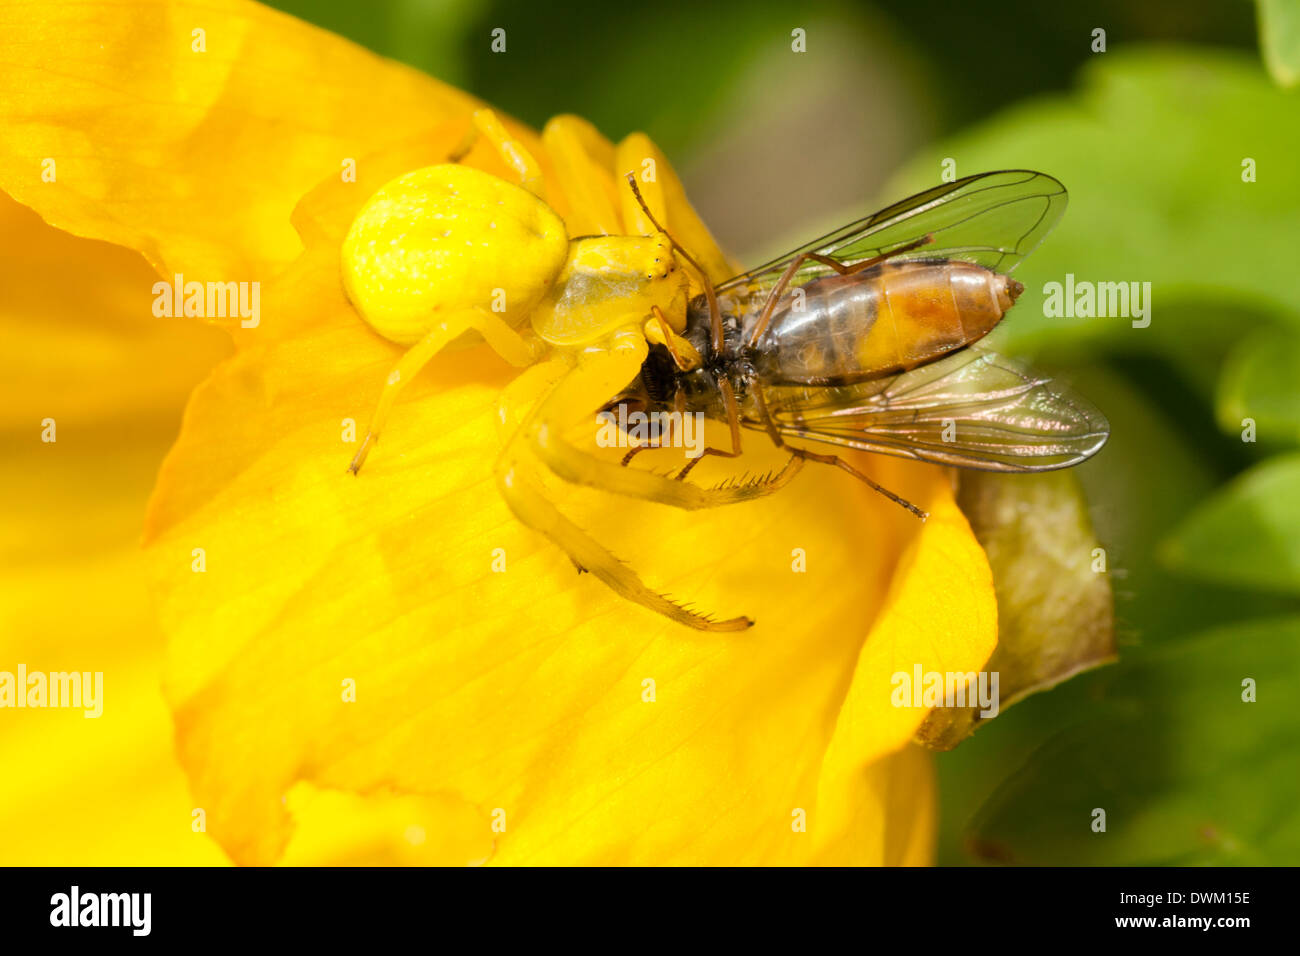 a-crab-spider-misumena-vatia-well-camouflaged-on-the-petals-of-meconopsis-DWM15E.jpg